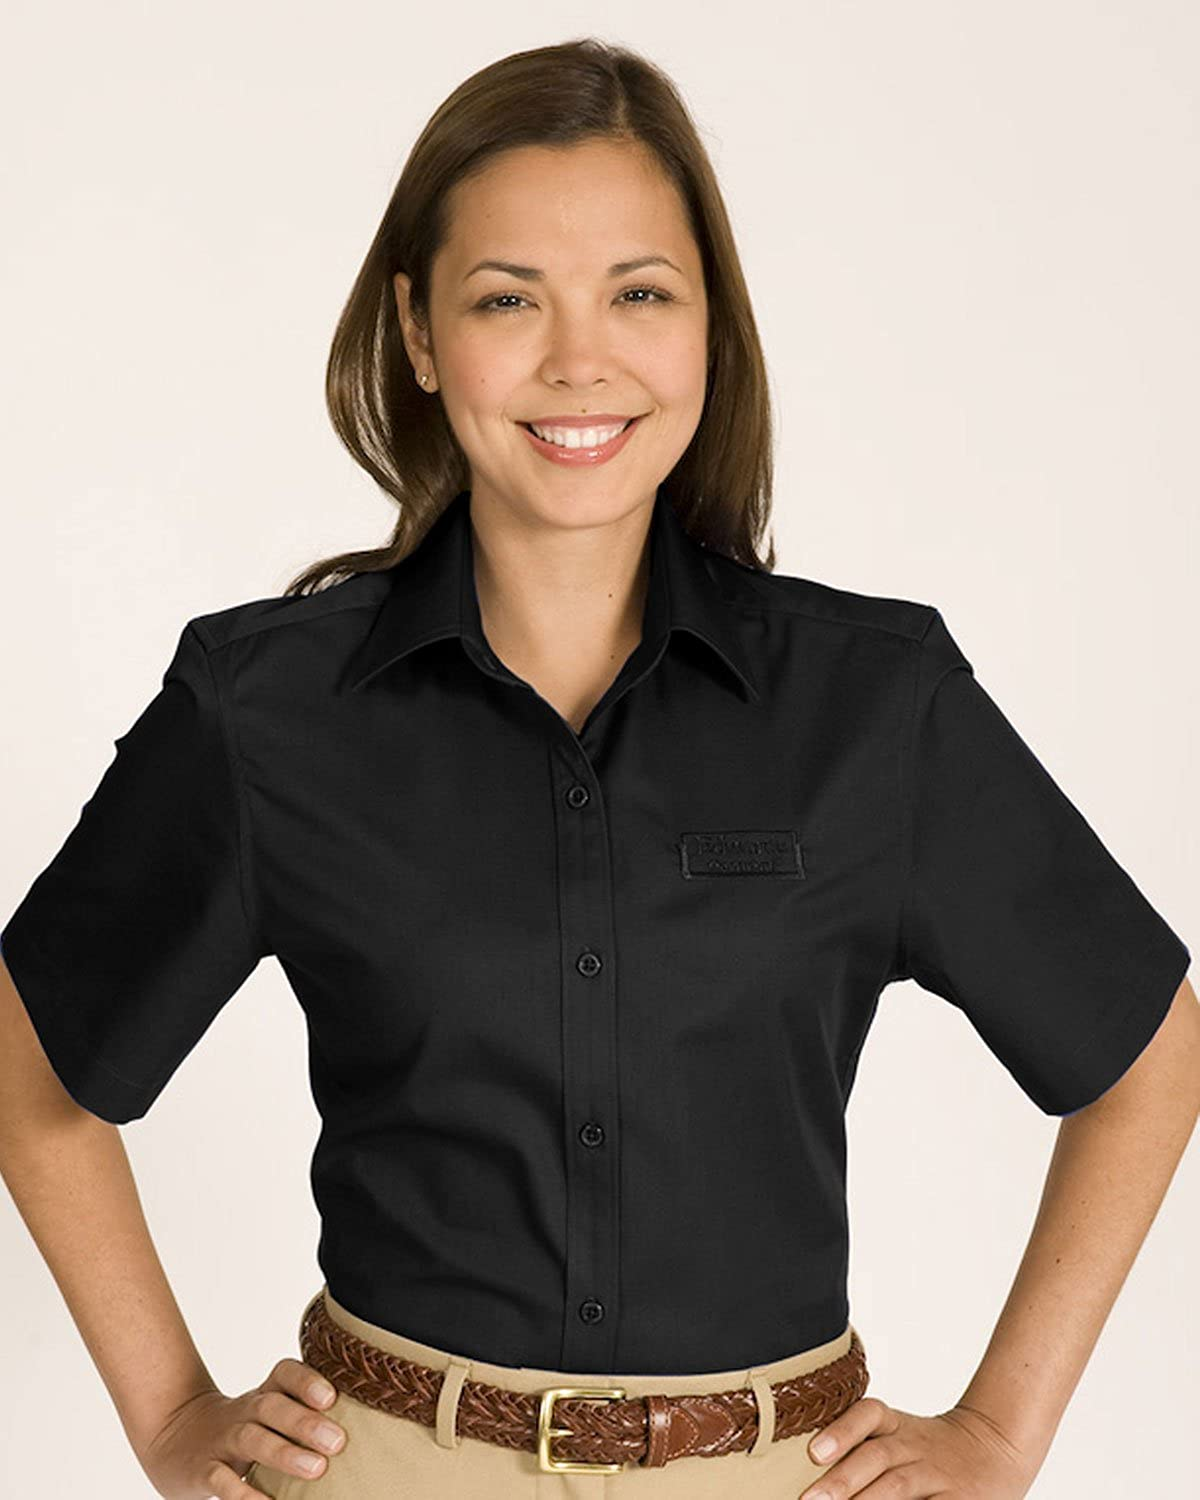 Edwards Garment Women's Cotton Plus Twill Short Sleeve Shirt, Black, X-Small